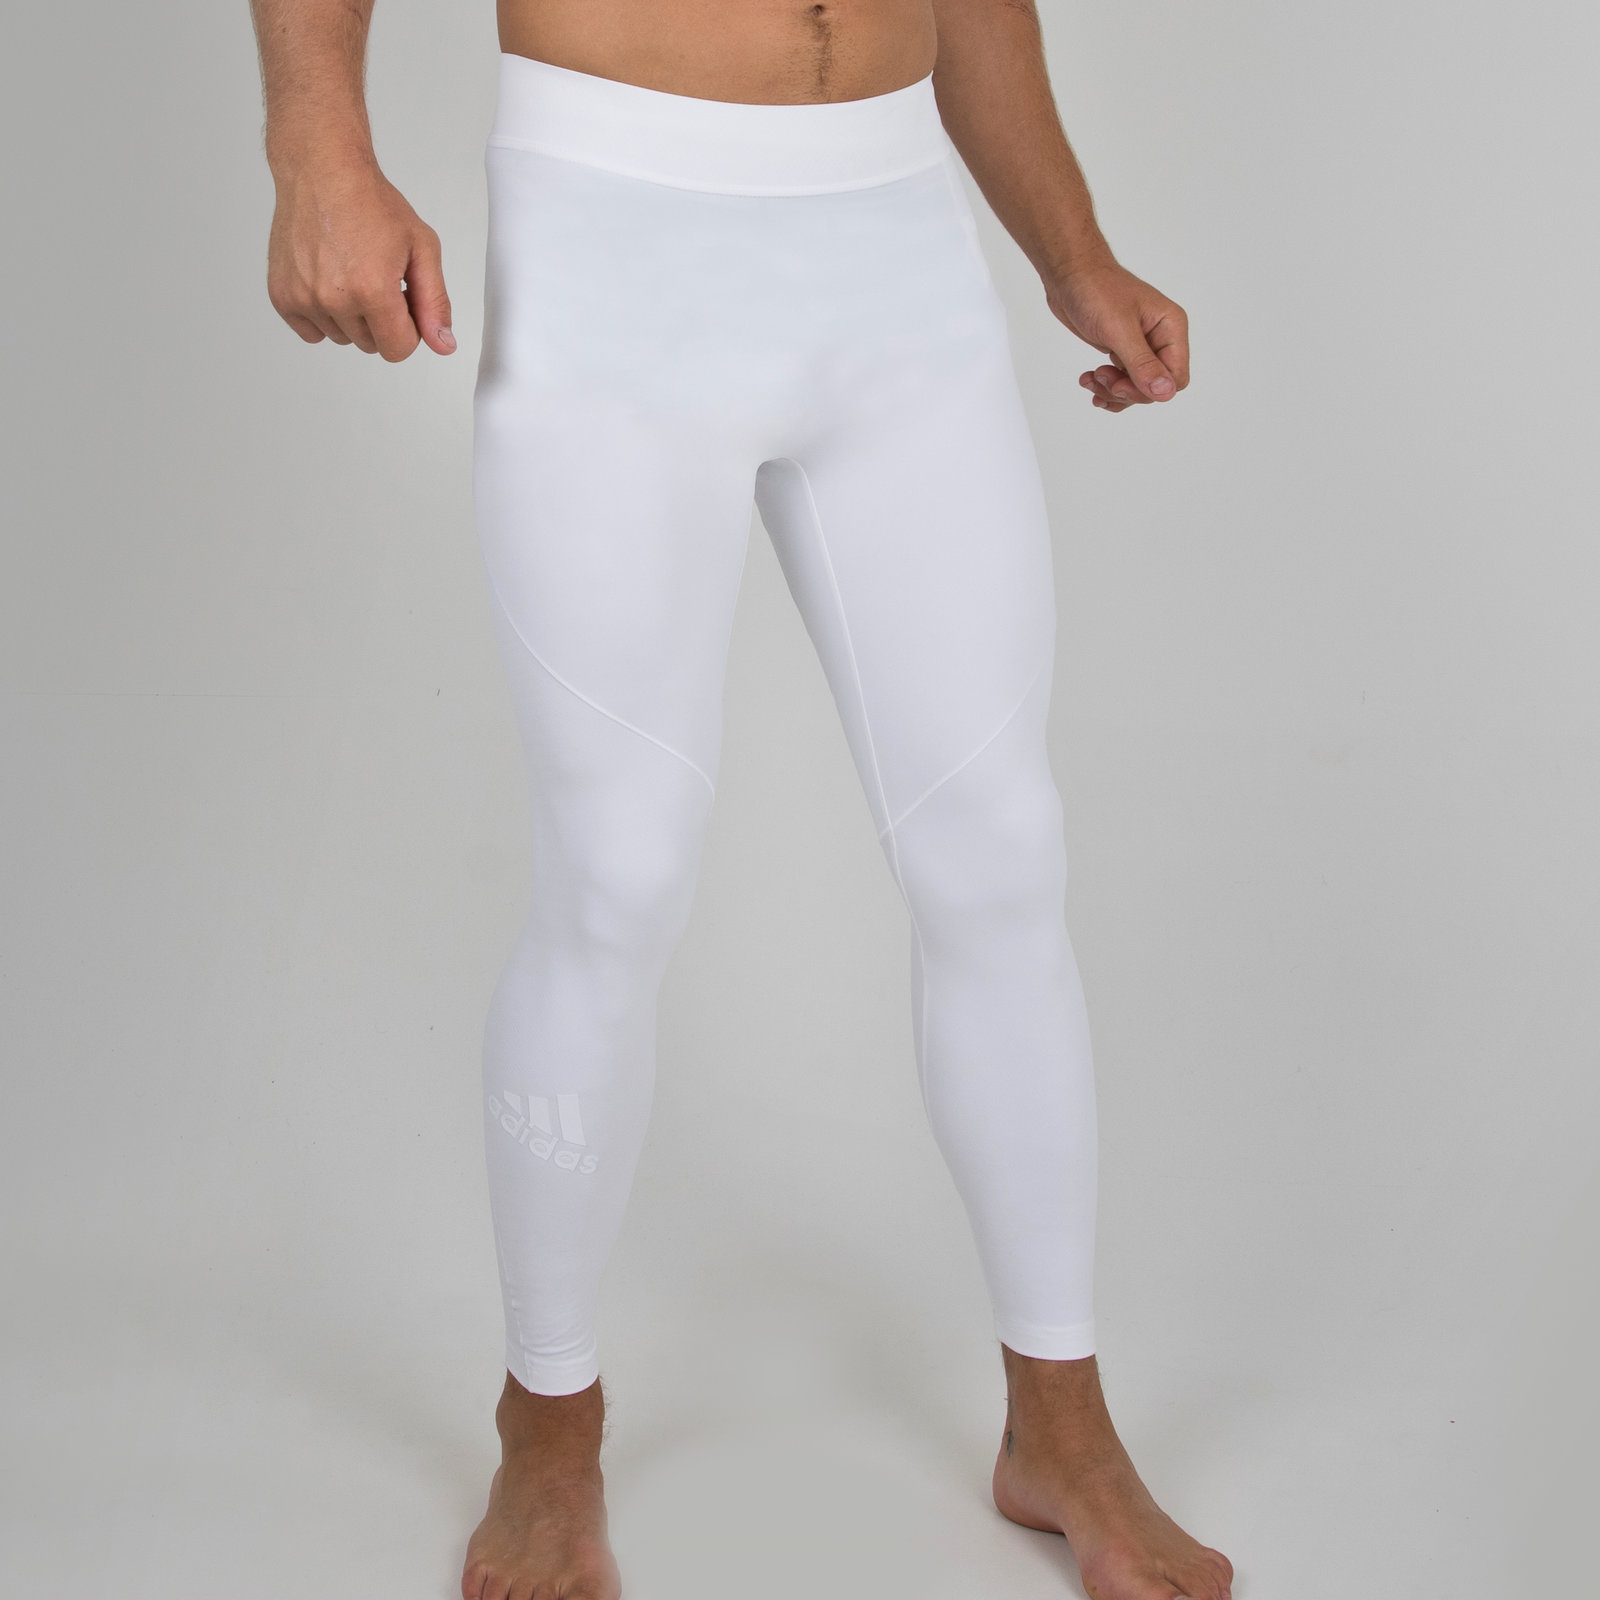 c0152309d364f adidas Mens Alphaskin Tec Climachill Compression Tights White Sports Pants